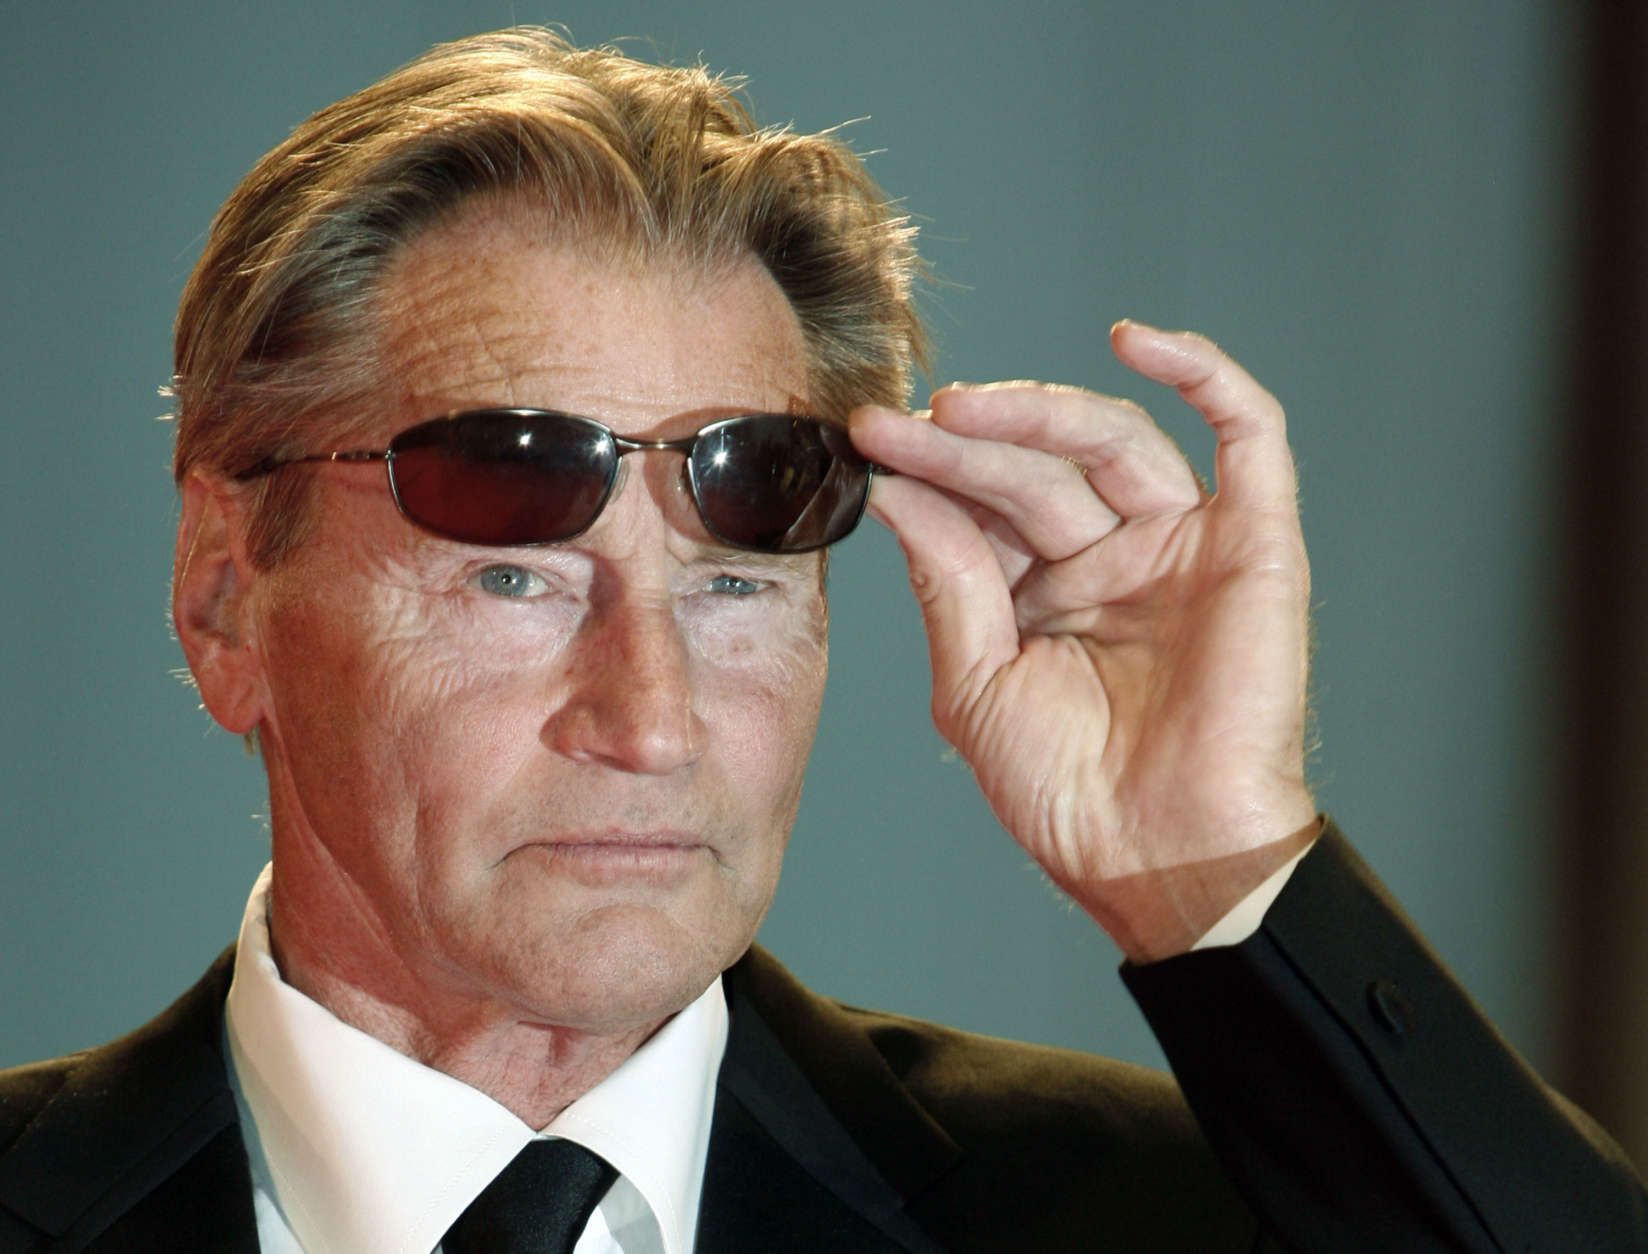 """Actor Sam Shepard arrives for the screening of his movie """"The assassination of Jesse James by the coward Robert Ford"""" at the 64th Venice Film Festival, in Venice, Italy, Sunday, Sept. 2, 2007. (AP Photo/Andrew Medichini)"""